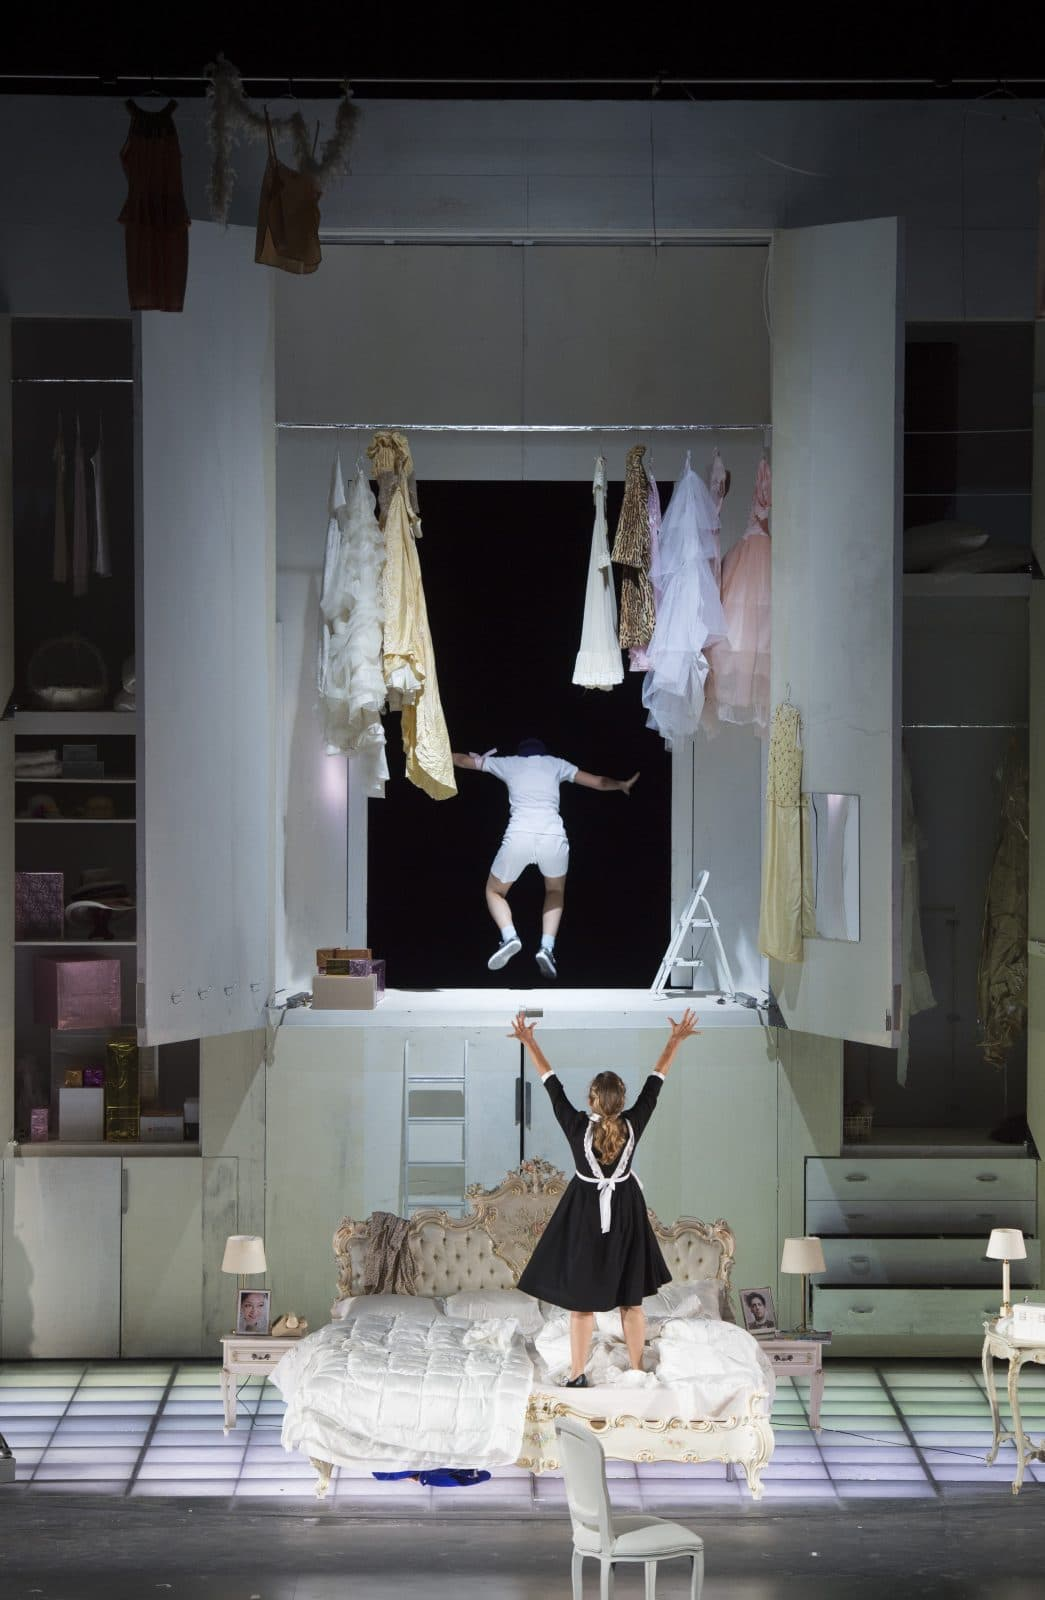 Le nozze di Figaro - september 2016